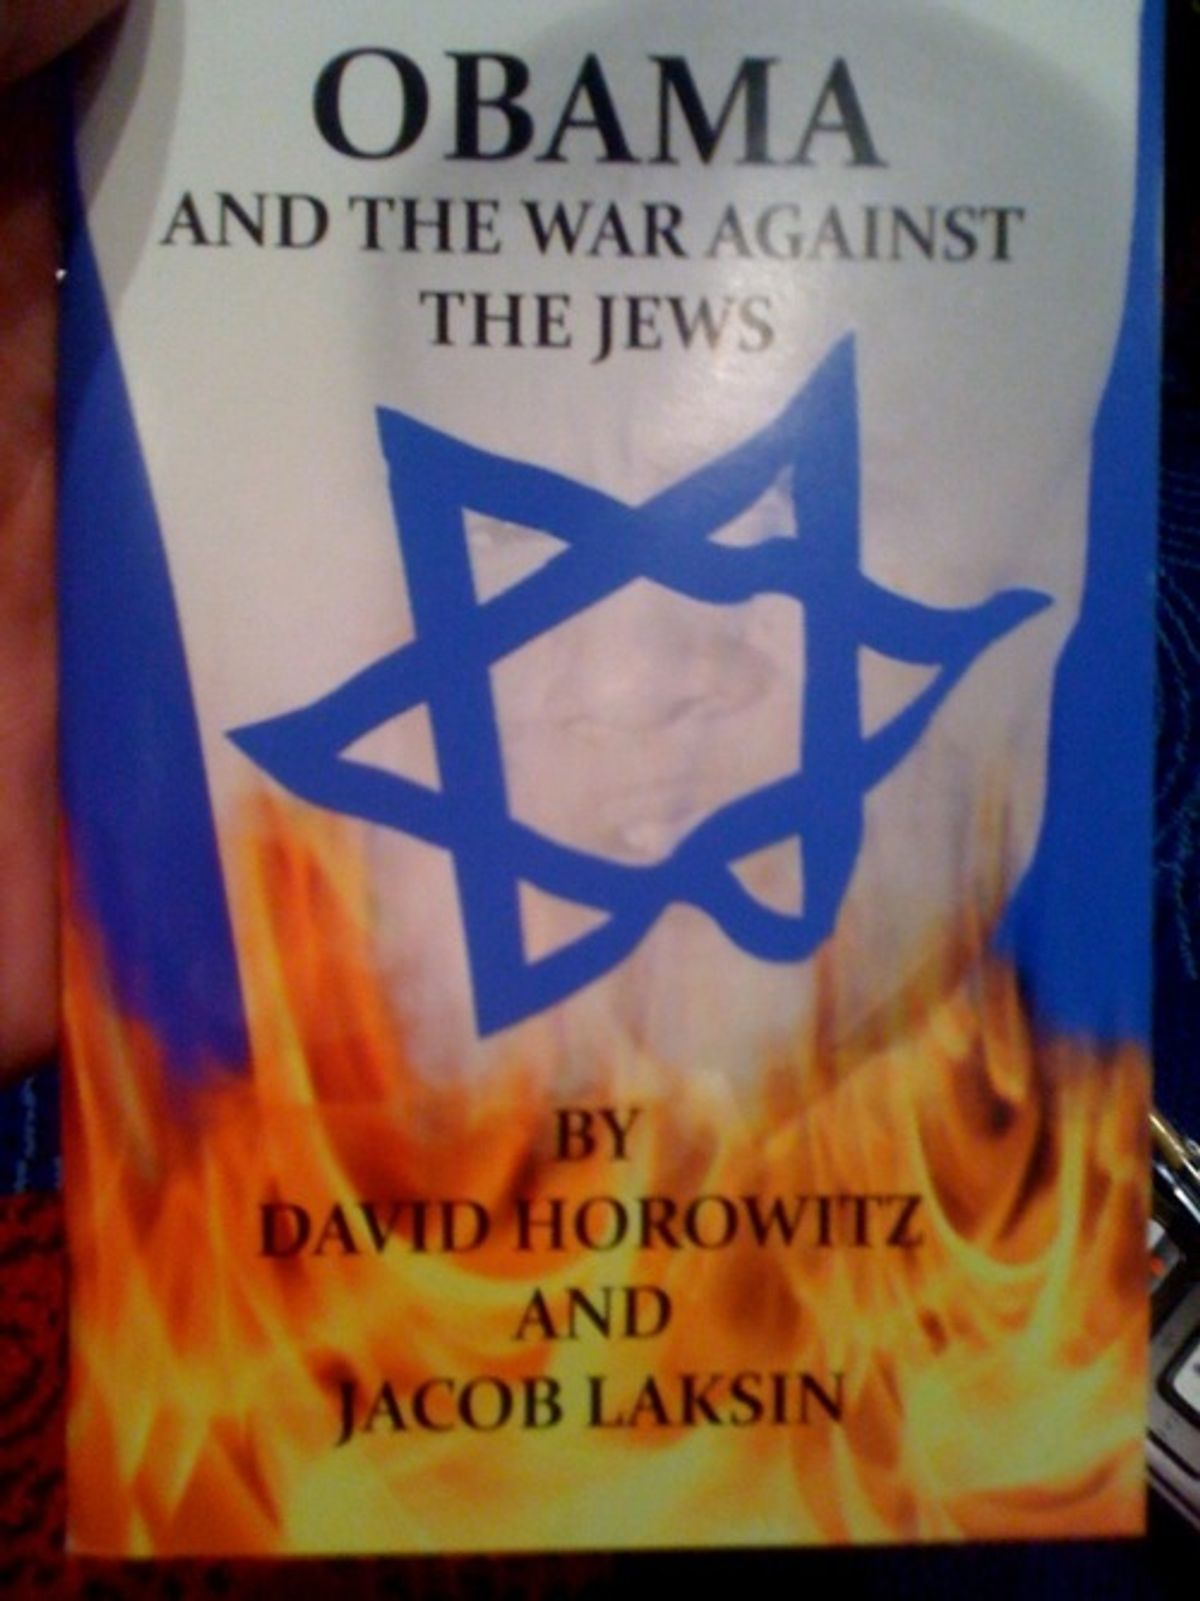 The cover of a book by David Horowitz being handed out at CPAC 2011.